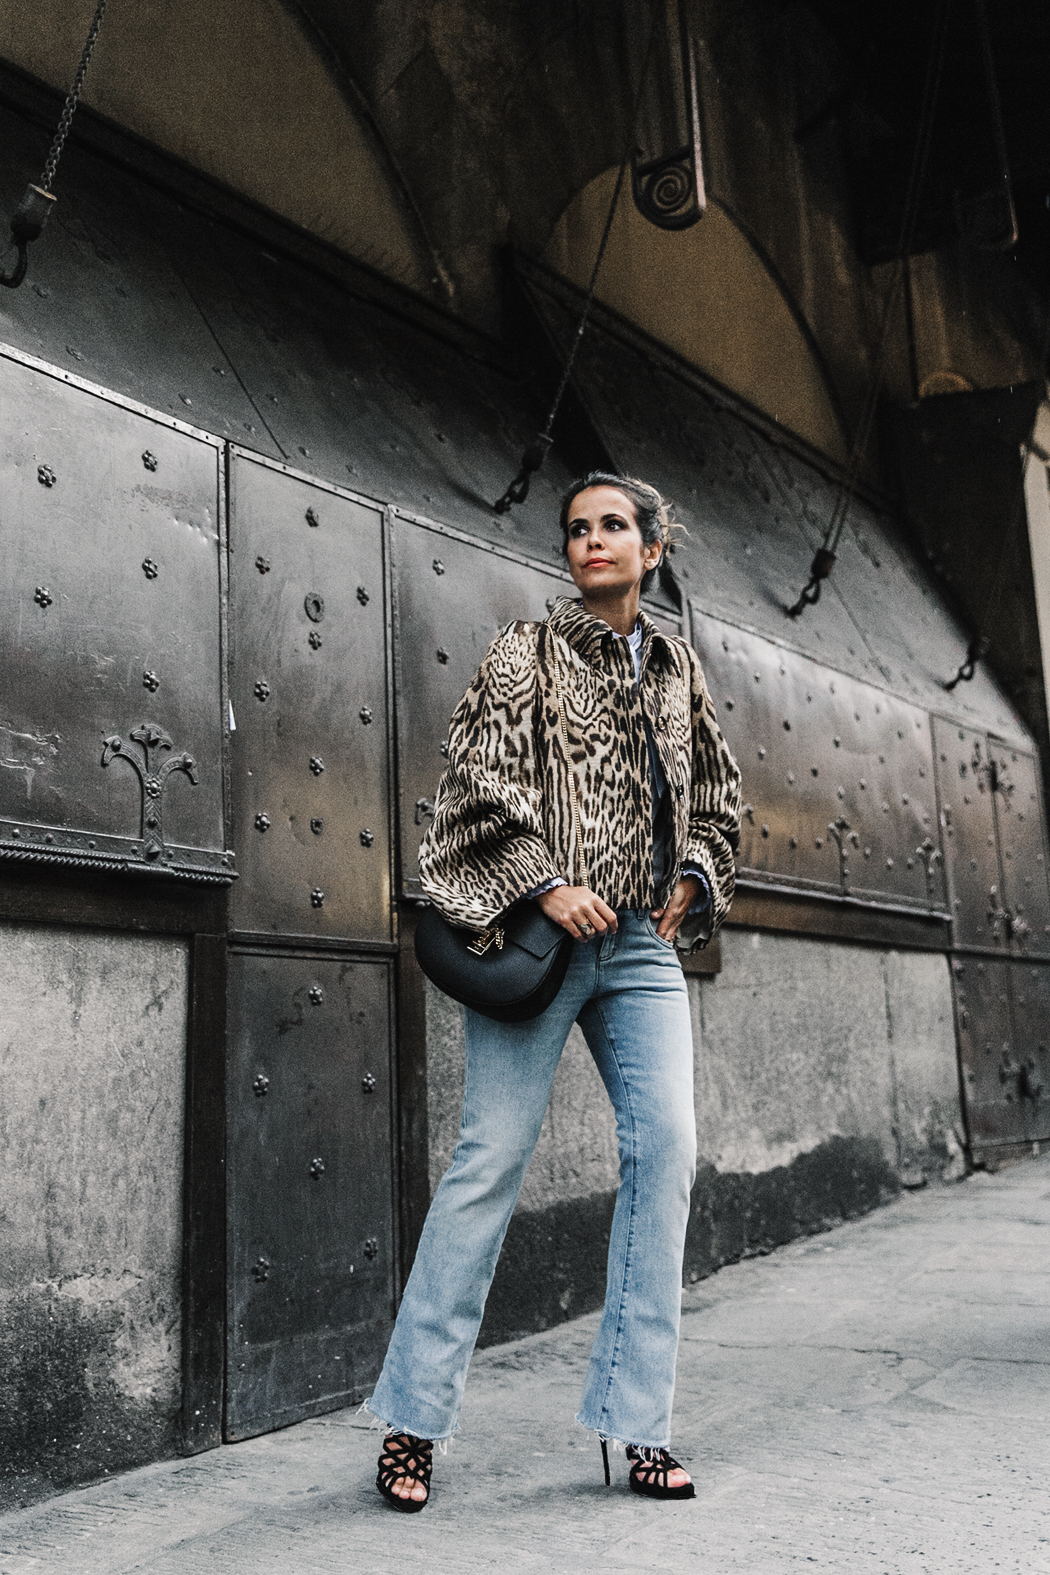 Firenze4Ever-Luisa_VIa_Roma-Chloe_Leopard_Jacket-Light_Blue_Blouse-Gucci_Jeans-_Look-Drew_Bag-Outfit-Florence-Street_Style-9